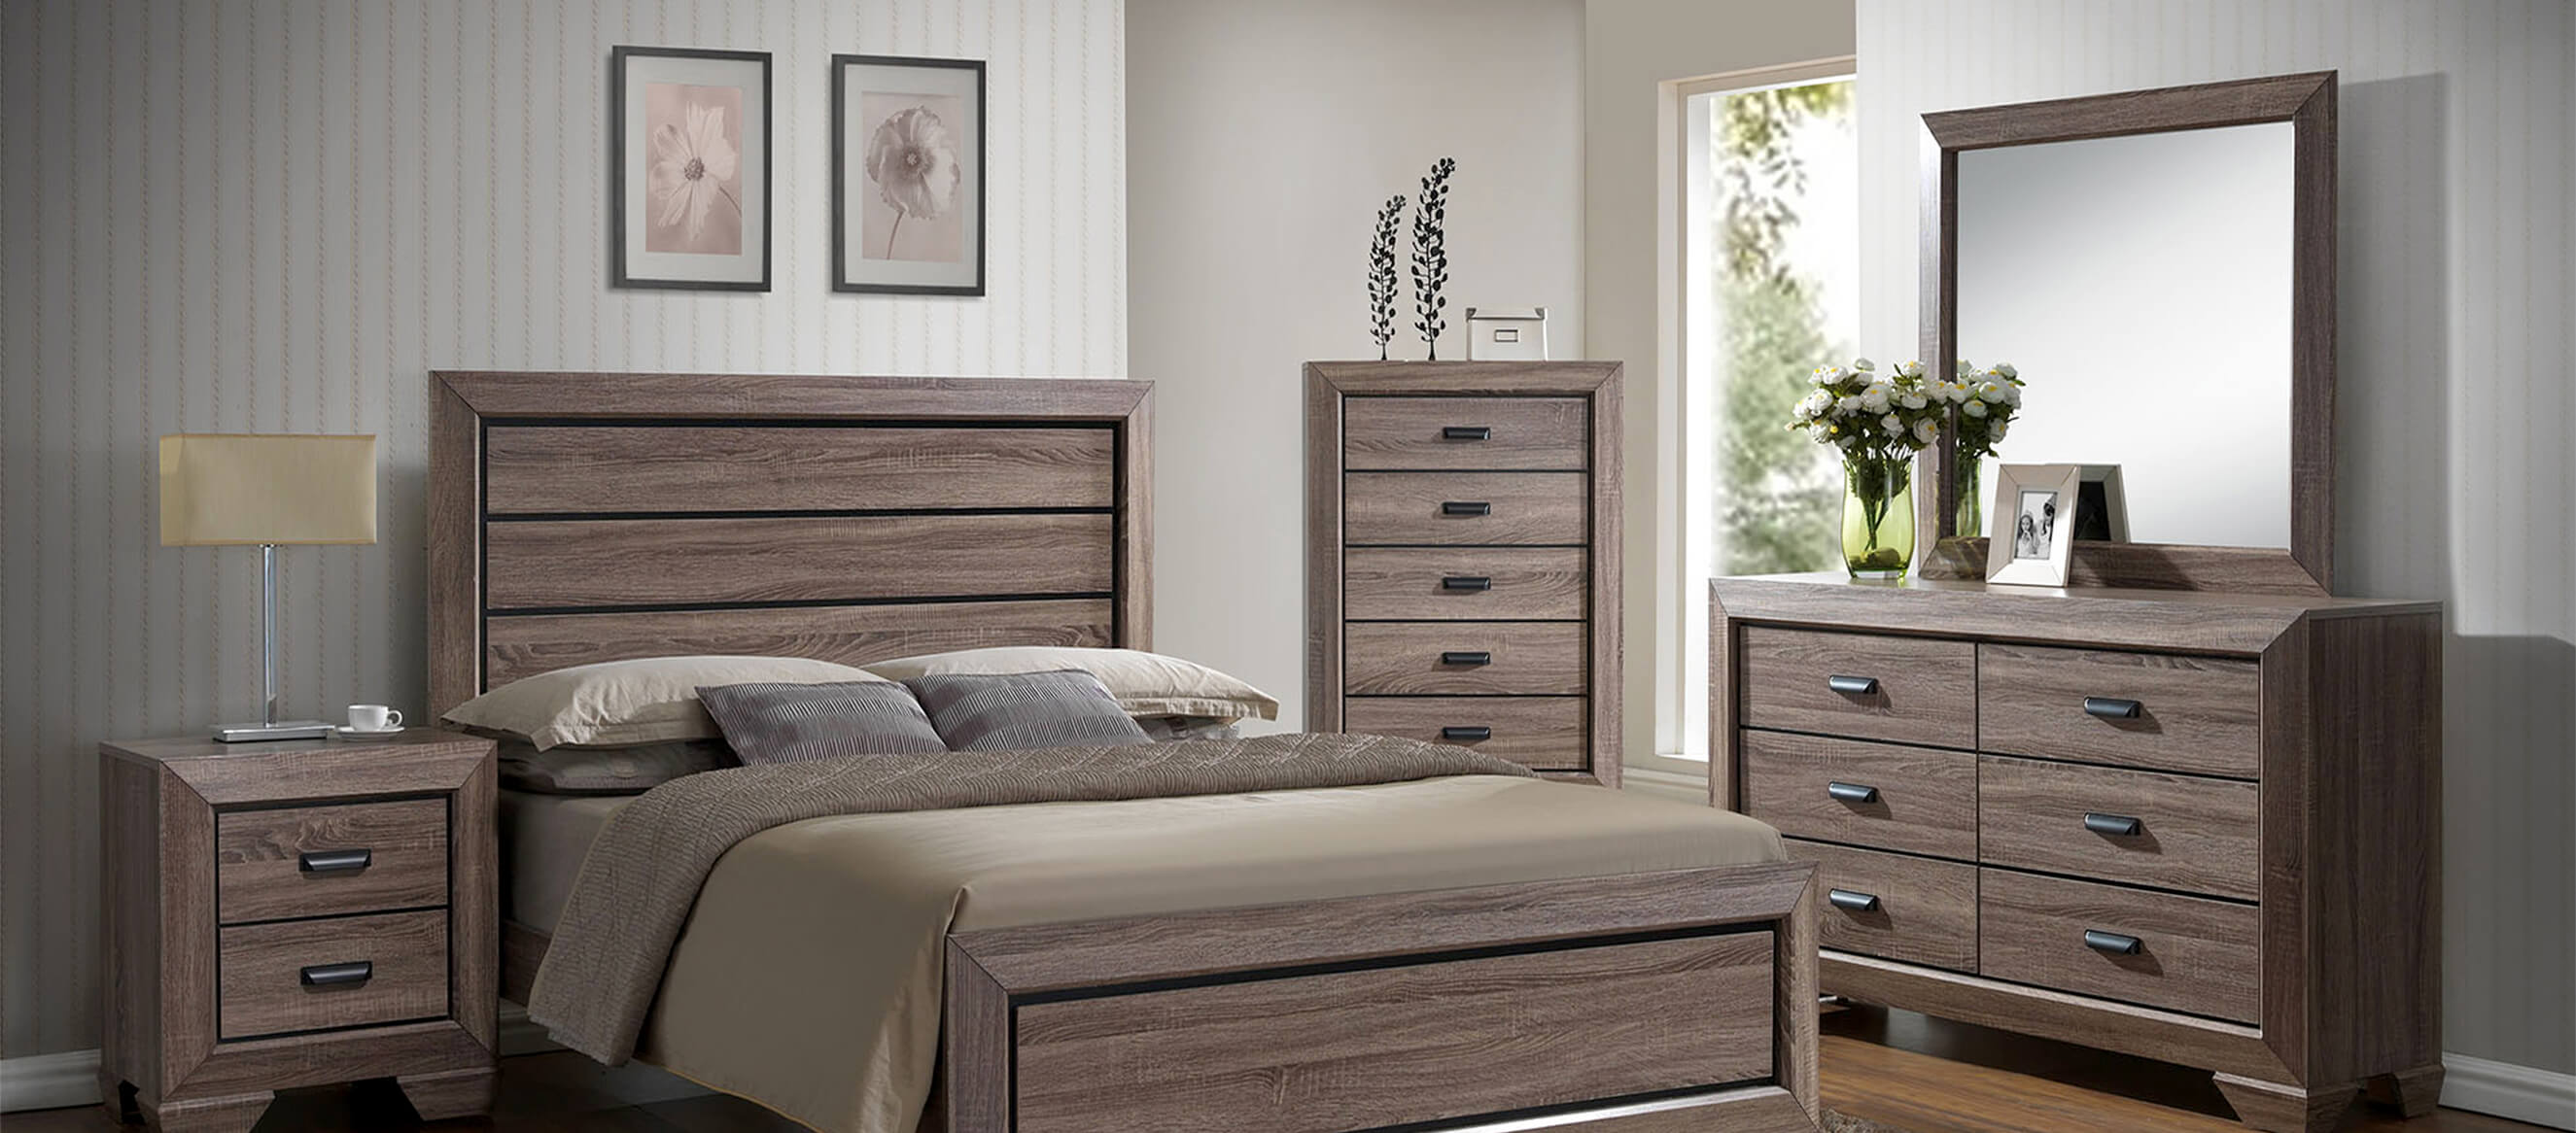 Cairo Bedroom Set